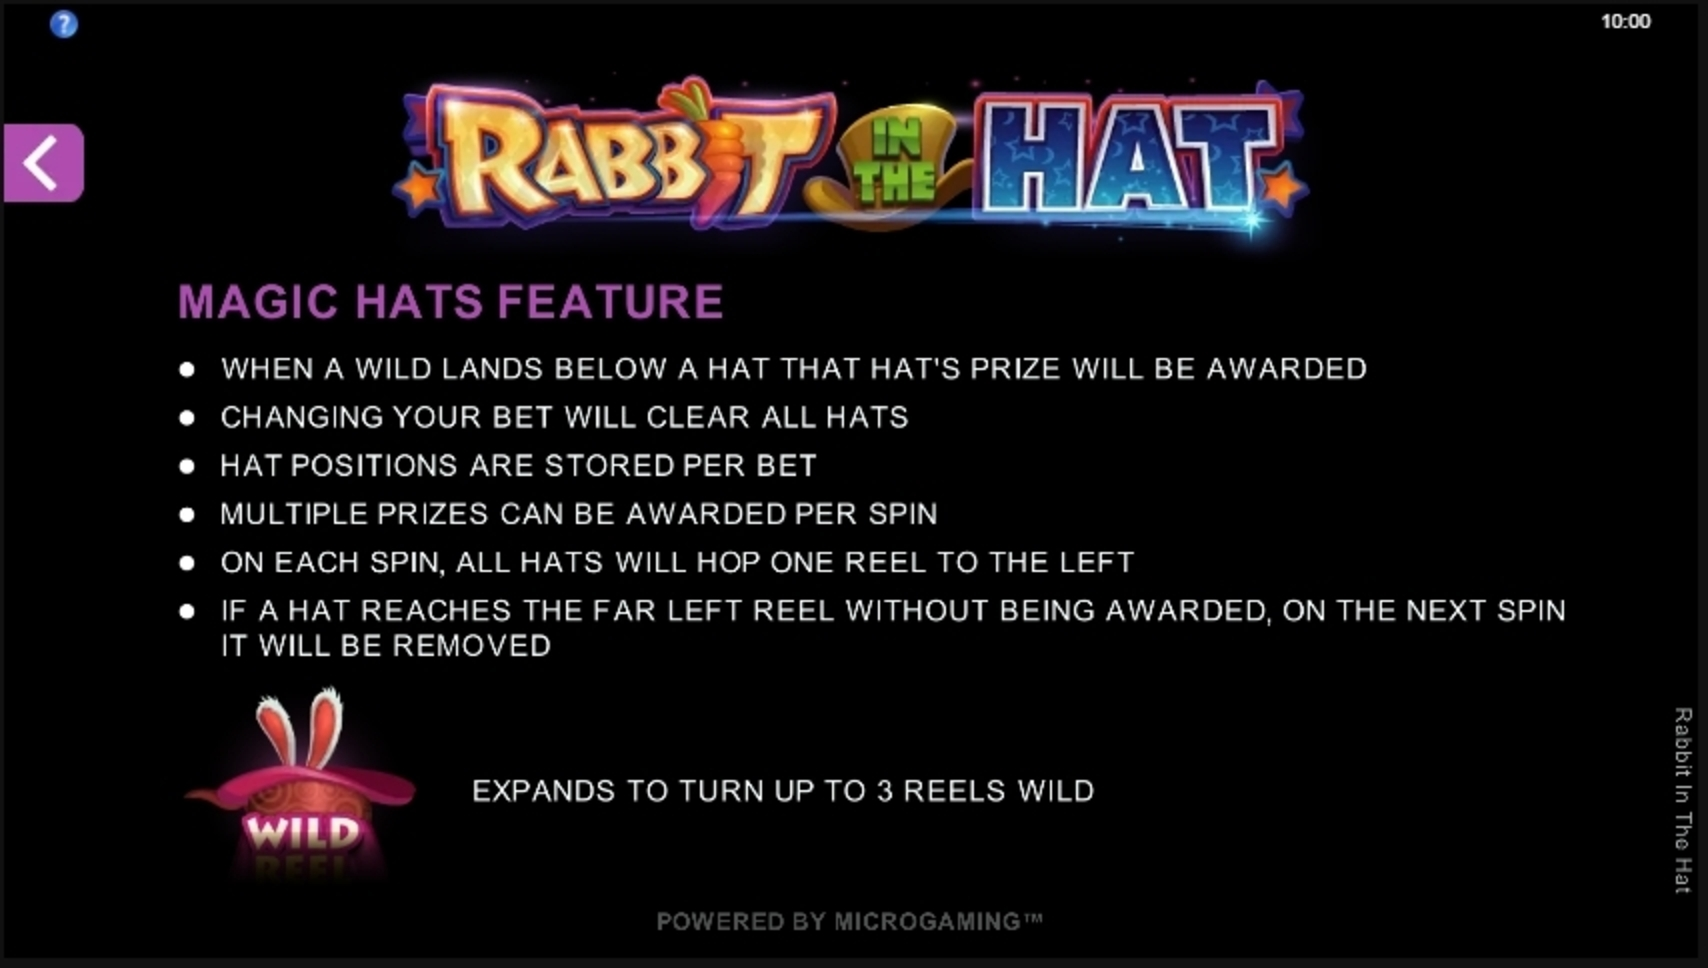 Info of Rabbit In The Hat Slot Game by Microgaming